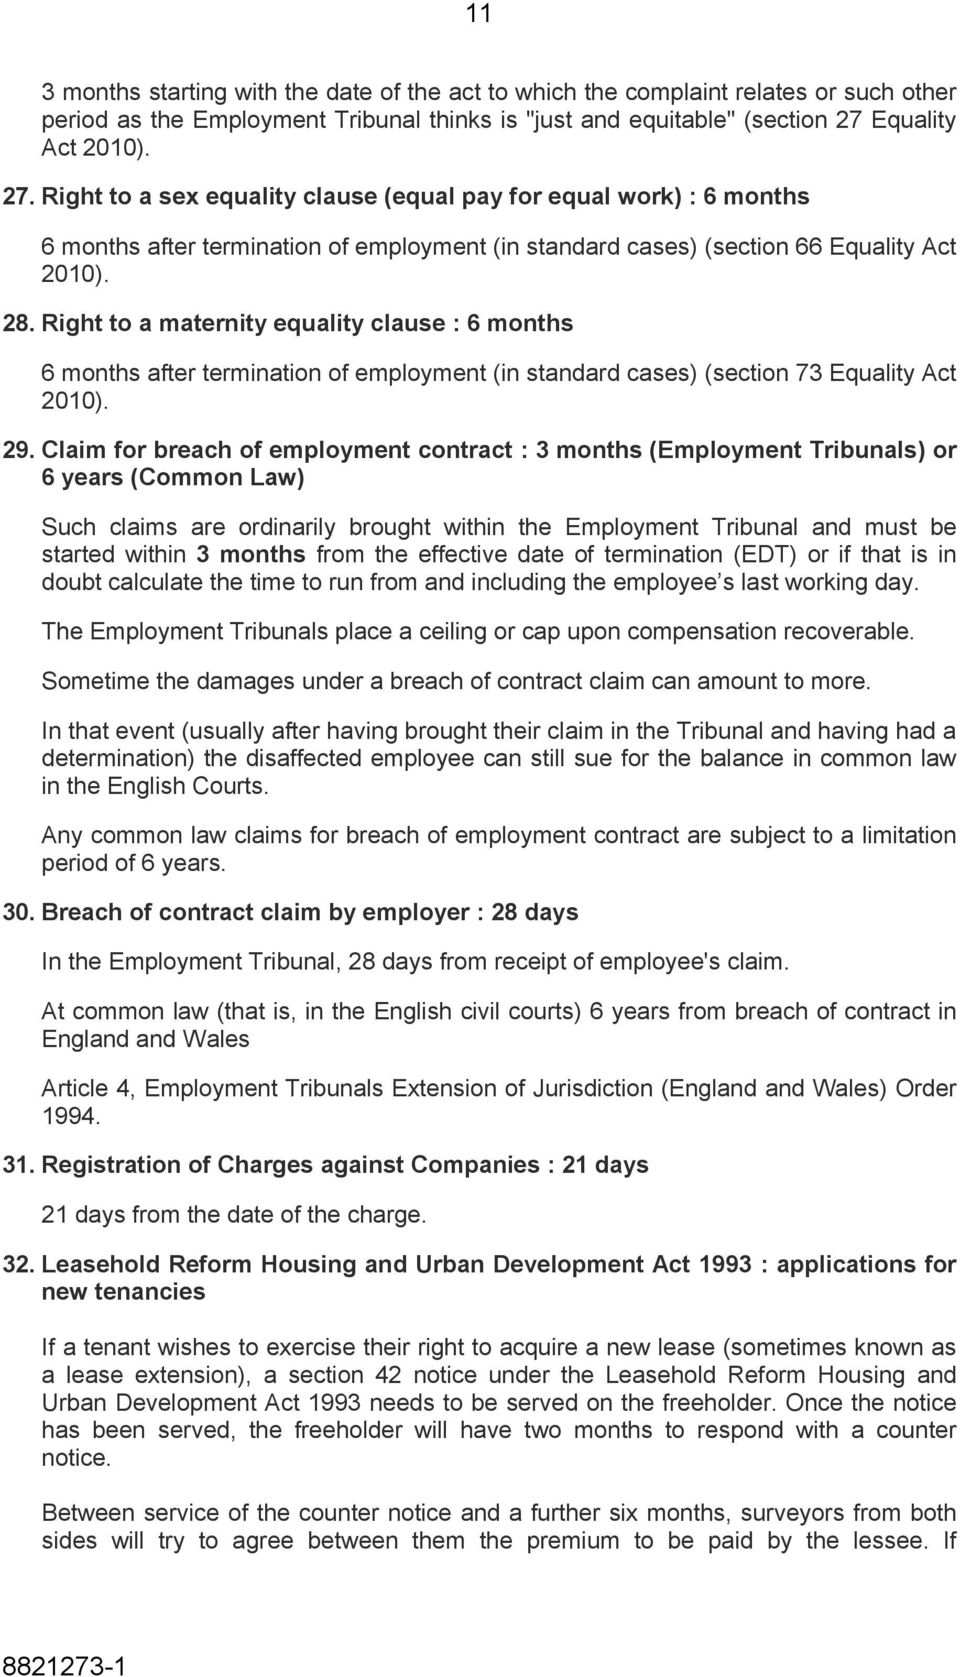 Right to a maternity equality clause : 6 months 6 months after termination of employment (in standard cases) (section 73 Equality Act 2010). 29.